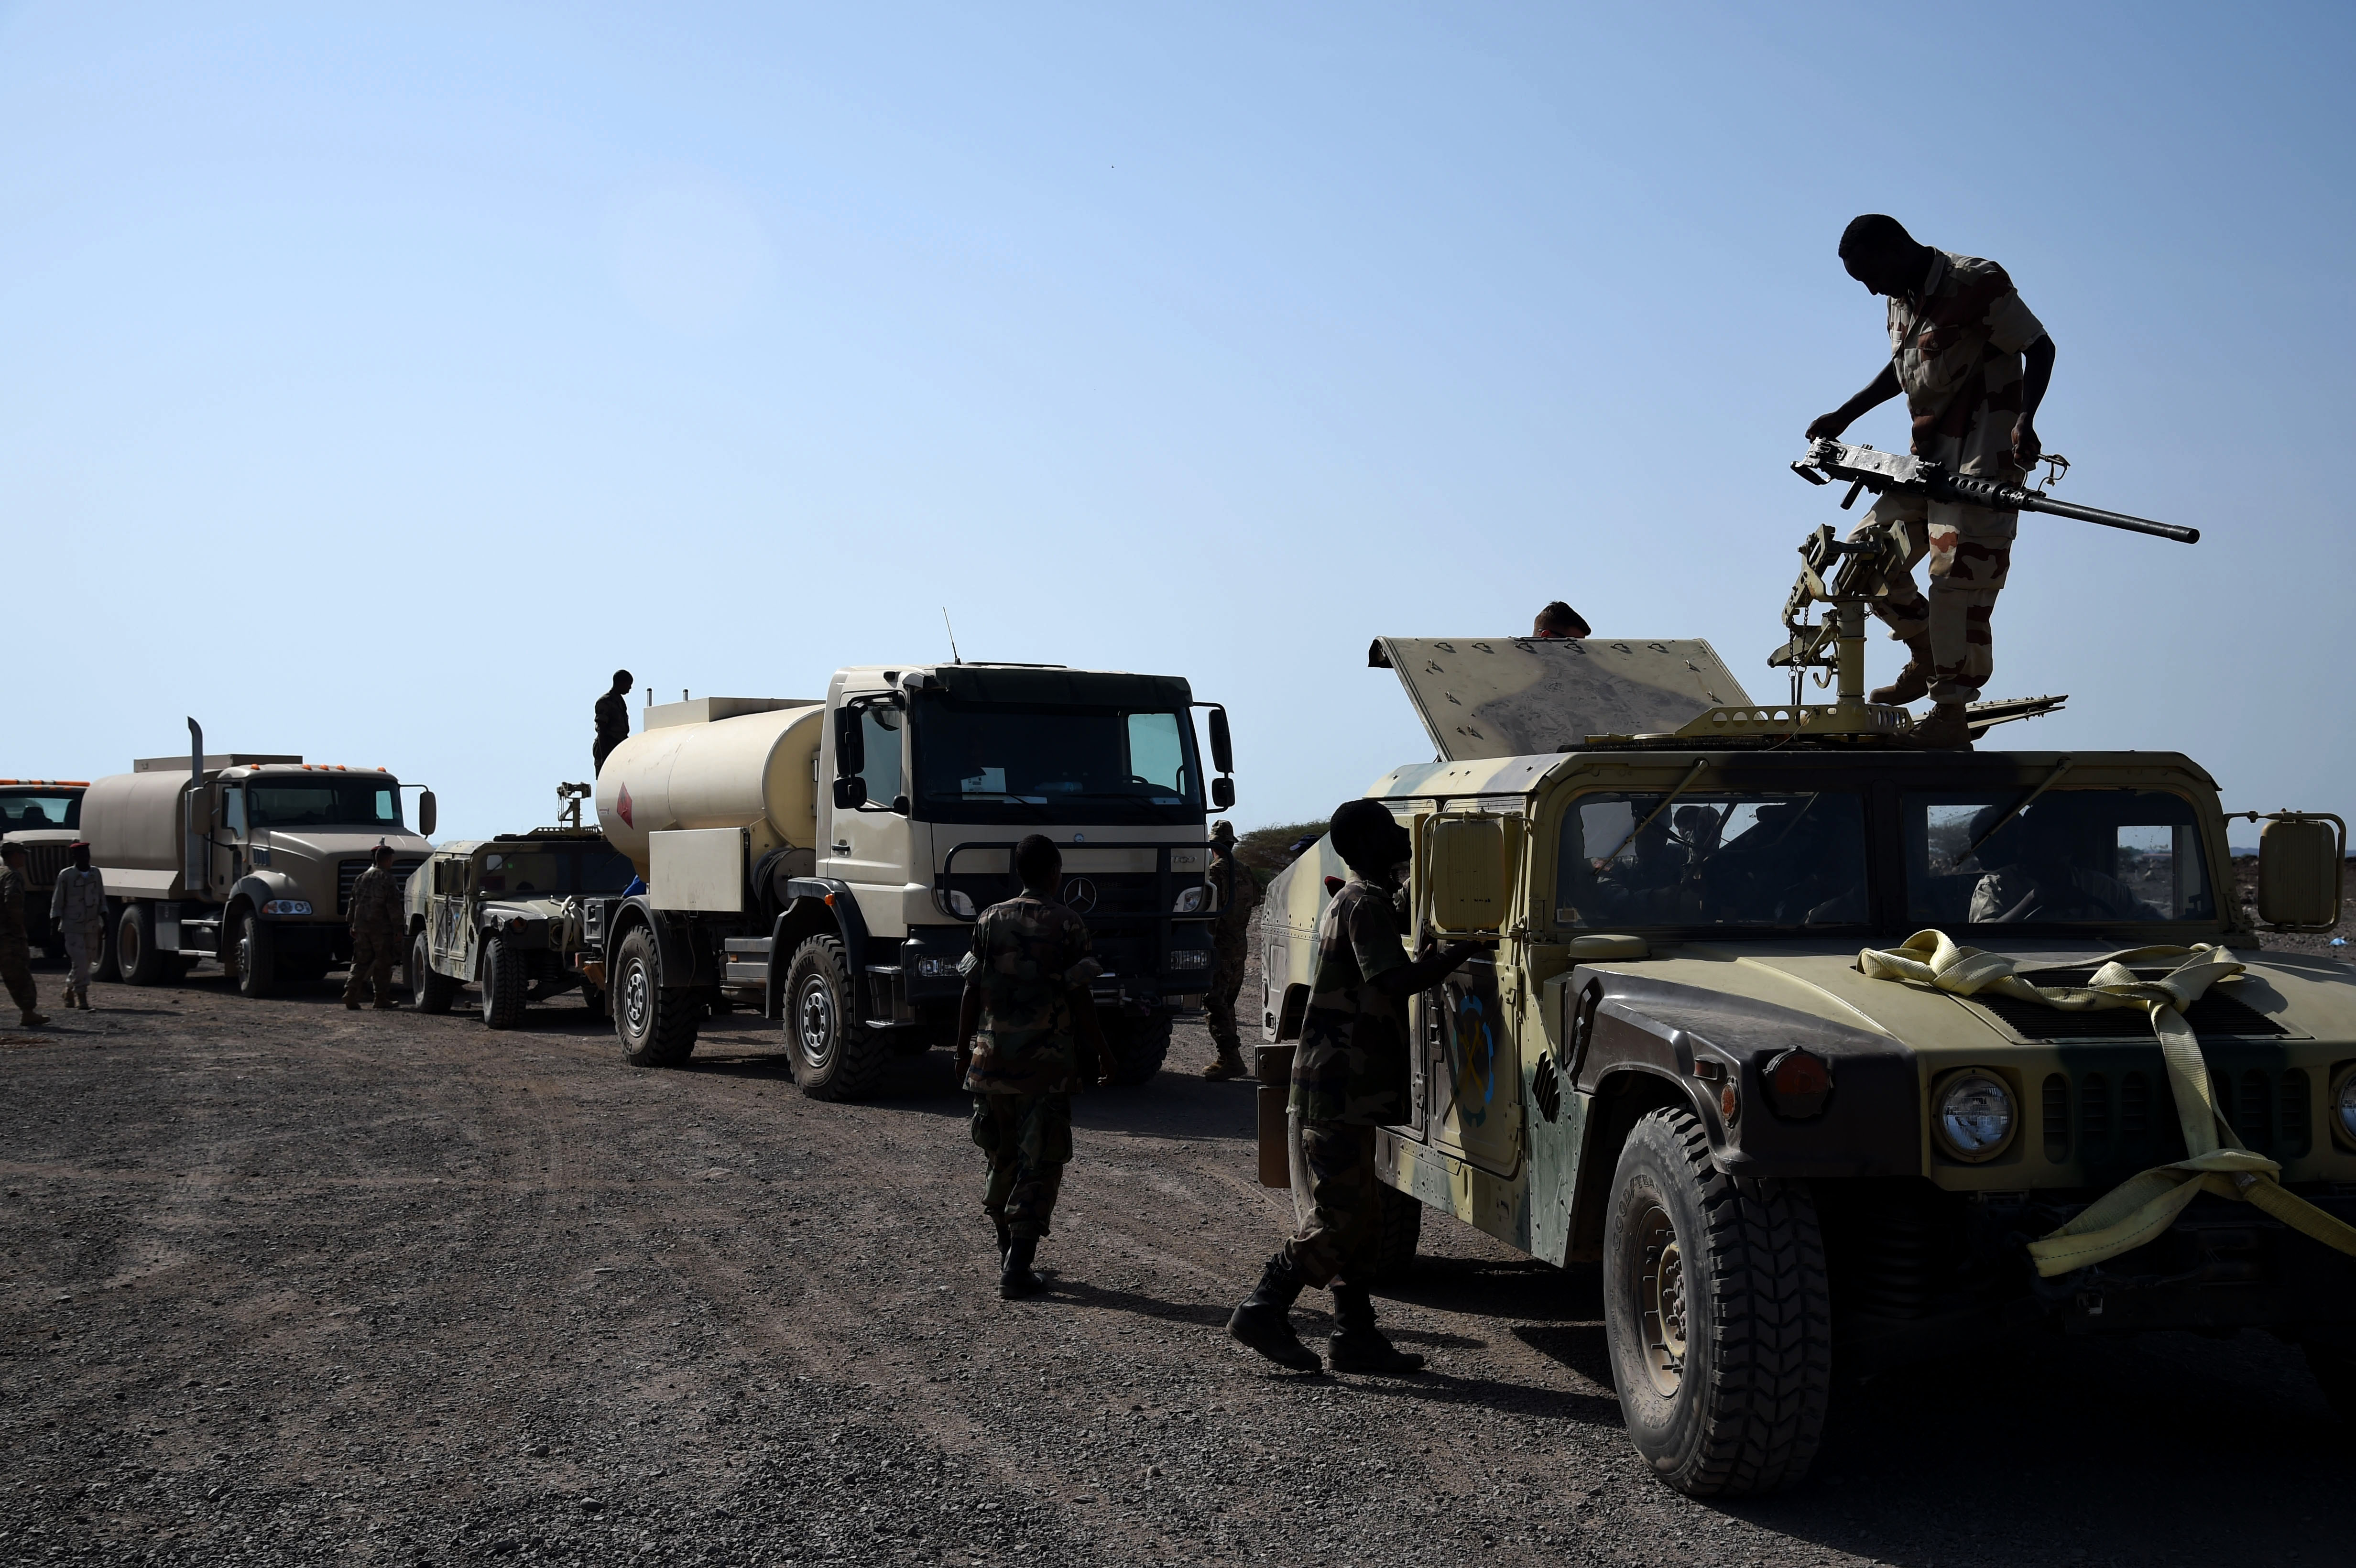 CAMP CHEIK OSMAN, Djibouti – Djiboutian Armed Forces (FAD) Soldiers prepare their convoy for the final test after completing a five-month training course instructed by the U.S. Army Regionally Aligned Forces Soldiers, May 16, 2016, at Camp Cheik Osman, Djibouti. The three-phased training was completed demonstrating their reactions to various mock situations from convoying through a road block, identifying mock roadside bombs, medical care, and vehicle recovery. (U.S. Air Force photo by Staff Sgt. Tiffany DeNault)